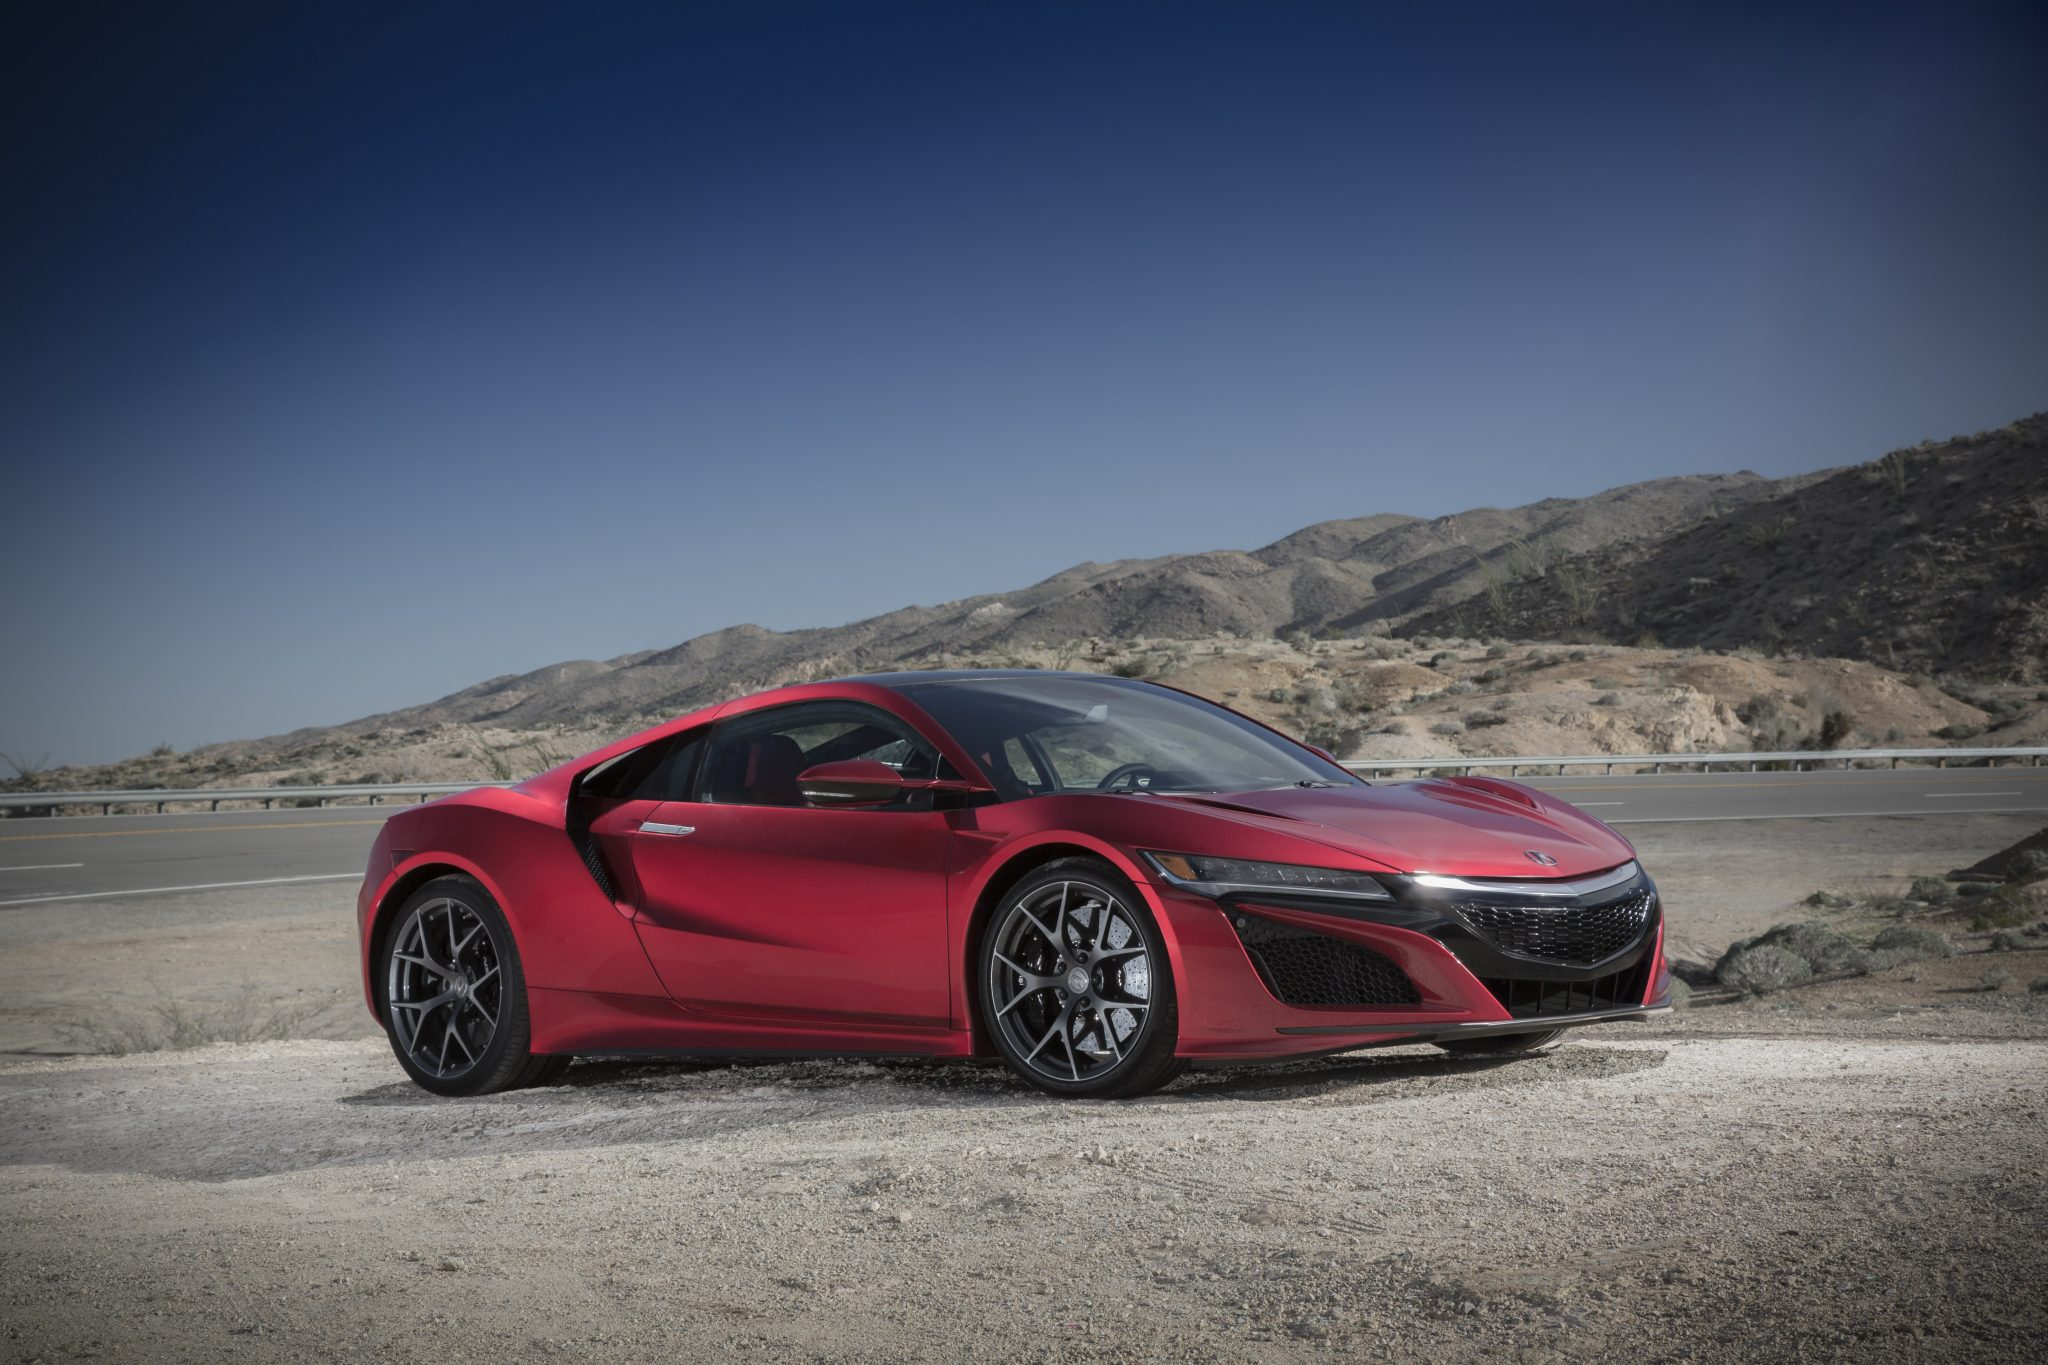 acura nsx gt3 race car storms into new york auto show. Black Bedroom Furniture Sets. Home Design Ideas